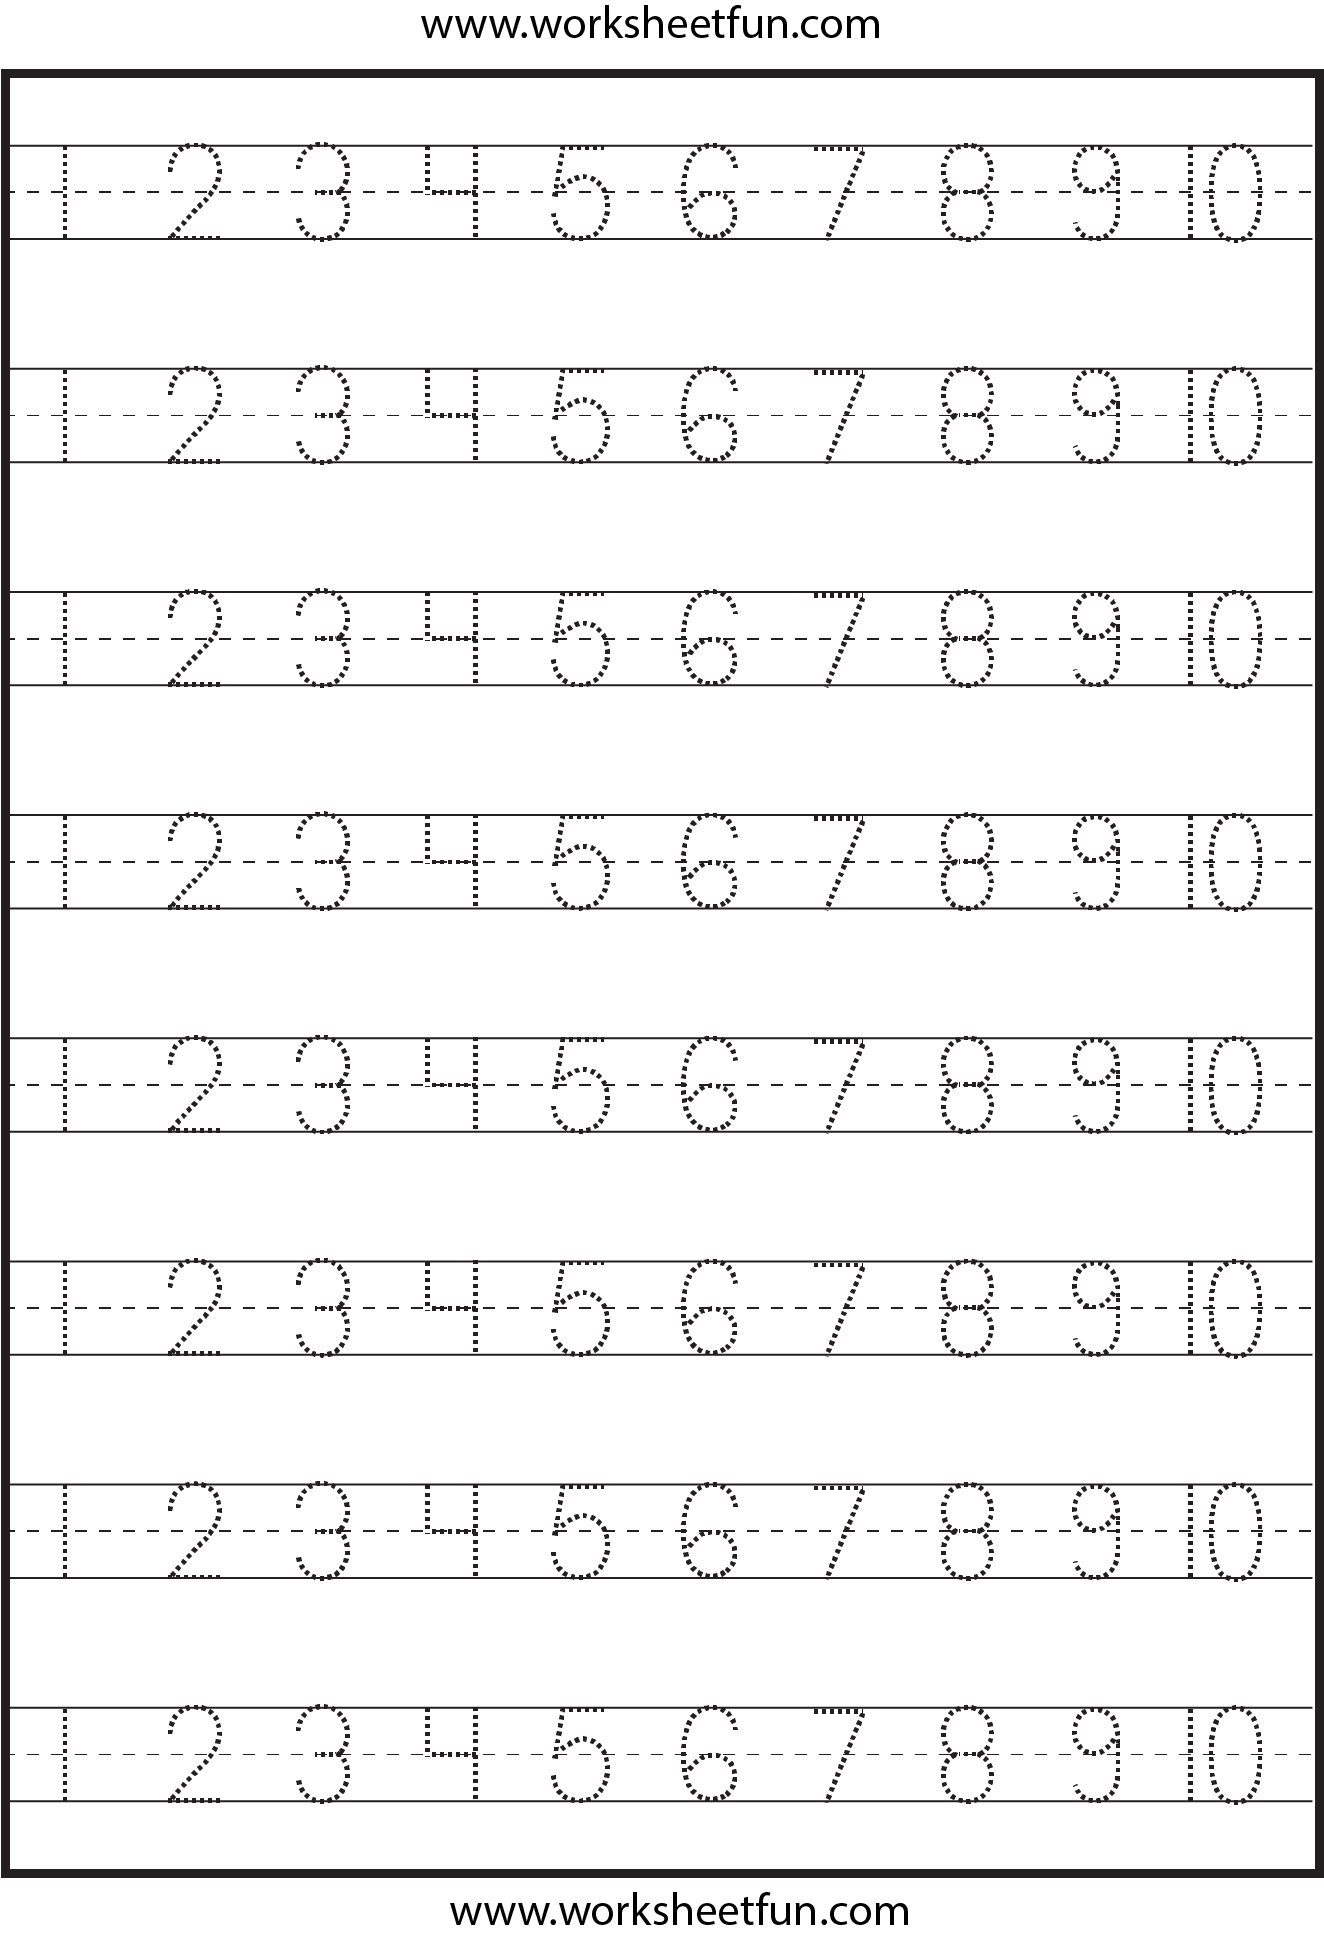 worksheet Number Worksheet number tracing 1 10 worksheet free printable worksheets tracing